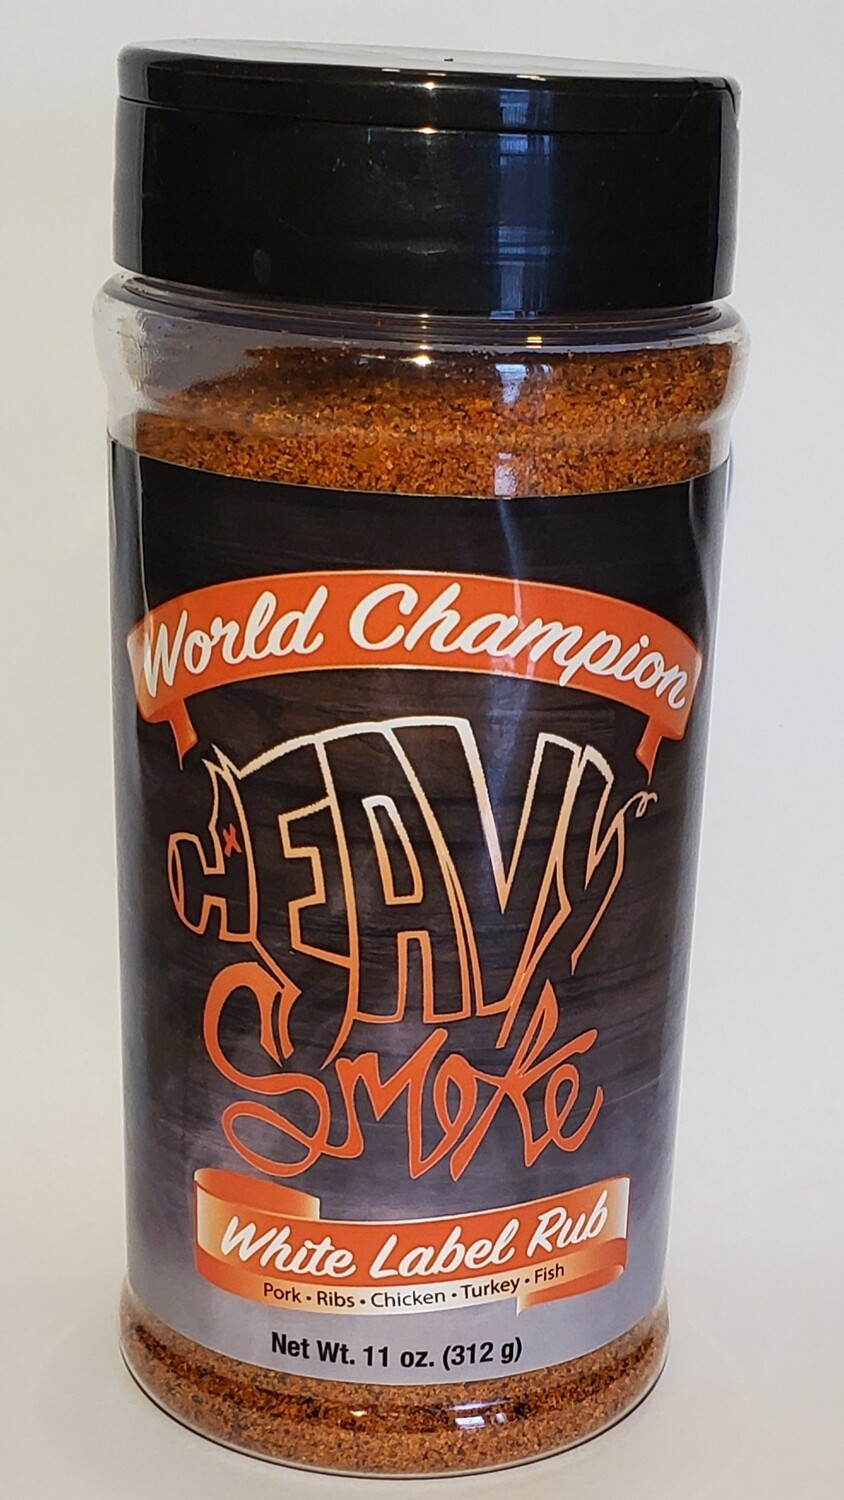 Heavy Smoke- White Label Rub- 11oz